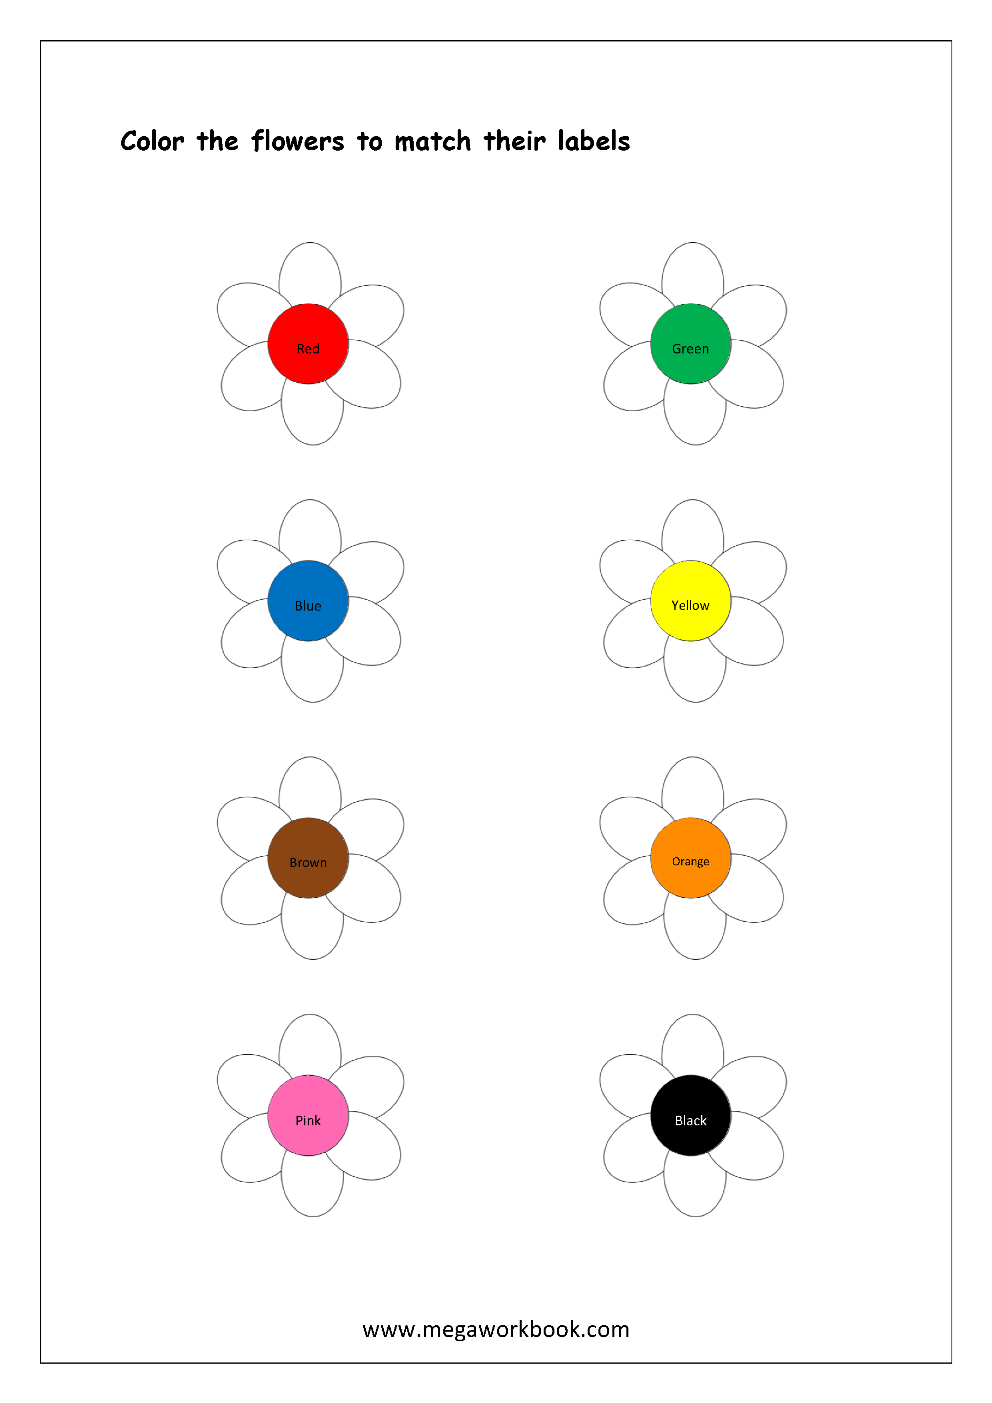 Color Recognition Worksheet - Color The Objects Using Matching Color - Color Recognition Worksheets Free Printable